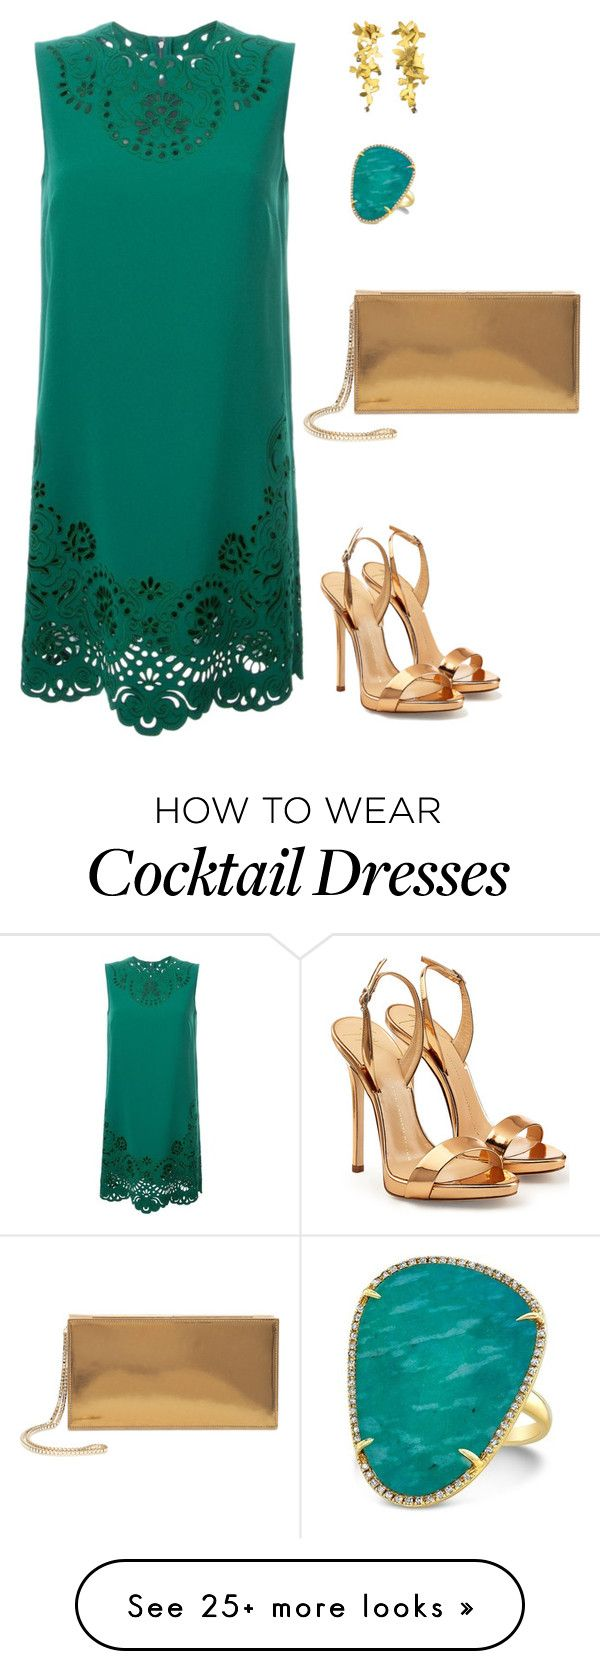 """""""Giuseppe"""" by tina-pieterse on Polyvore featuring Giuseppe Zanotti, Dolce&Gabbana, Jimmy Choo, women's clothing, women, female, woman, misses and juniors"""